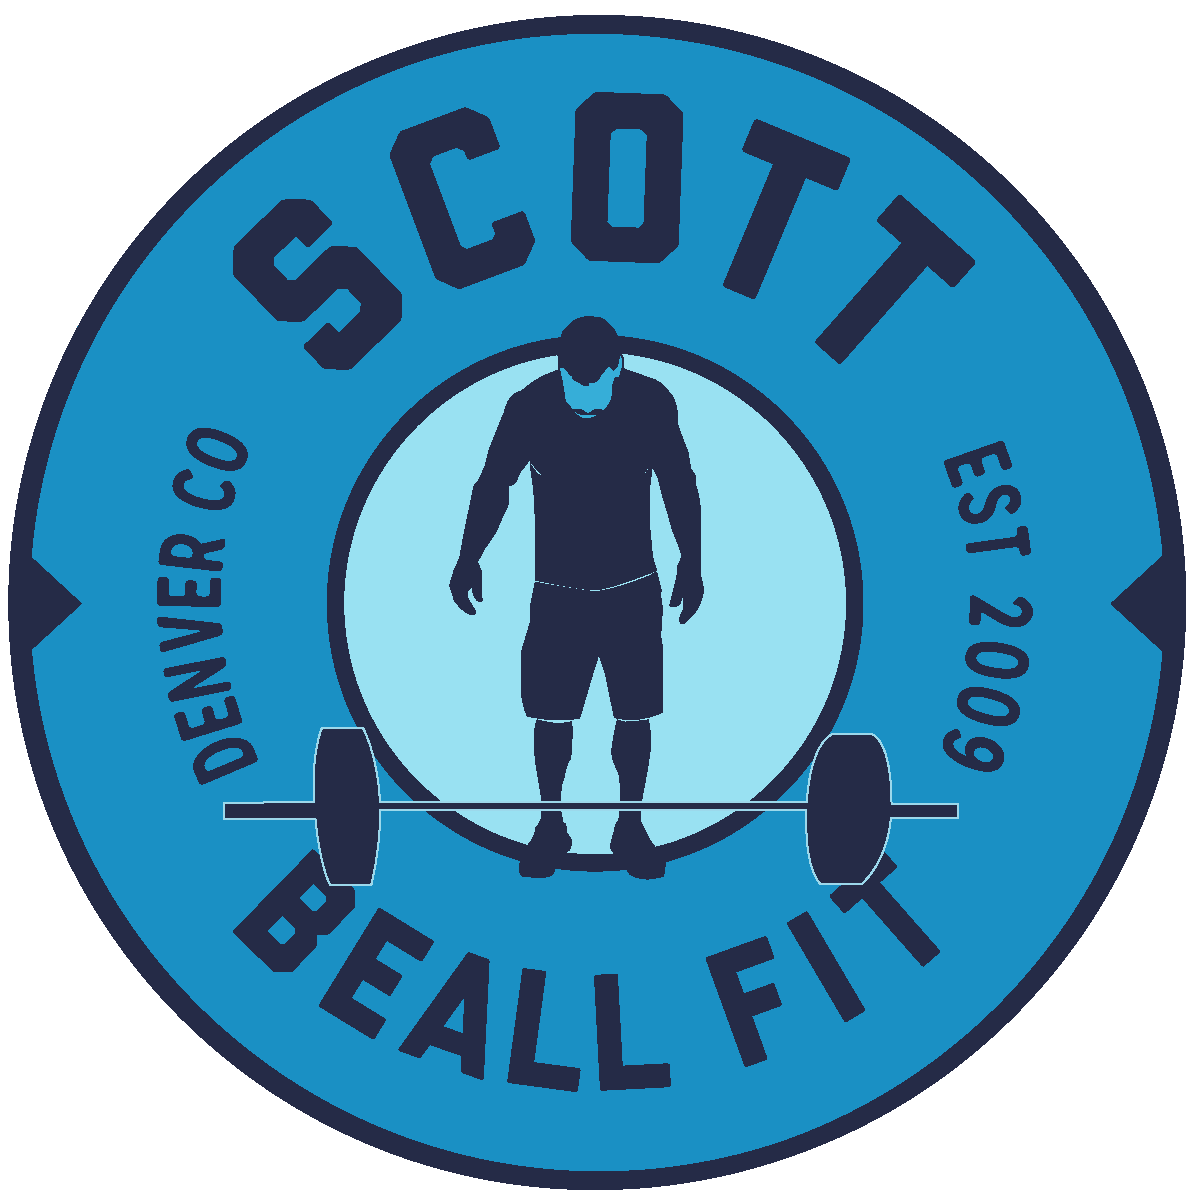 Scott Beall Fit